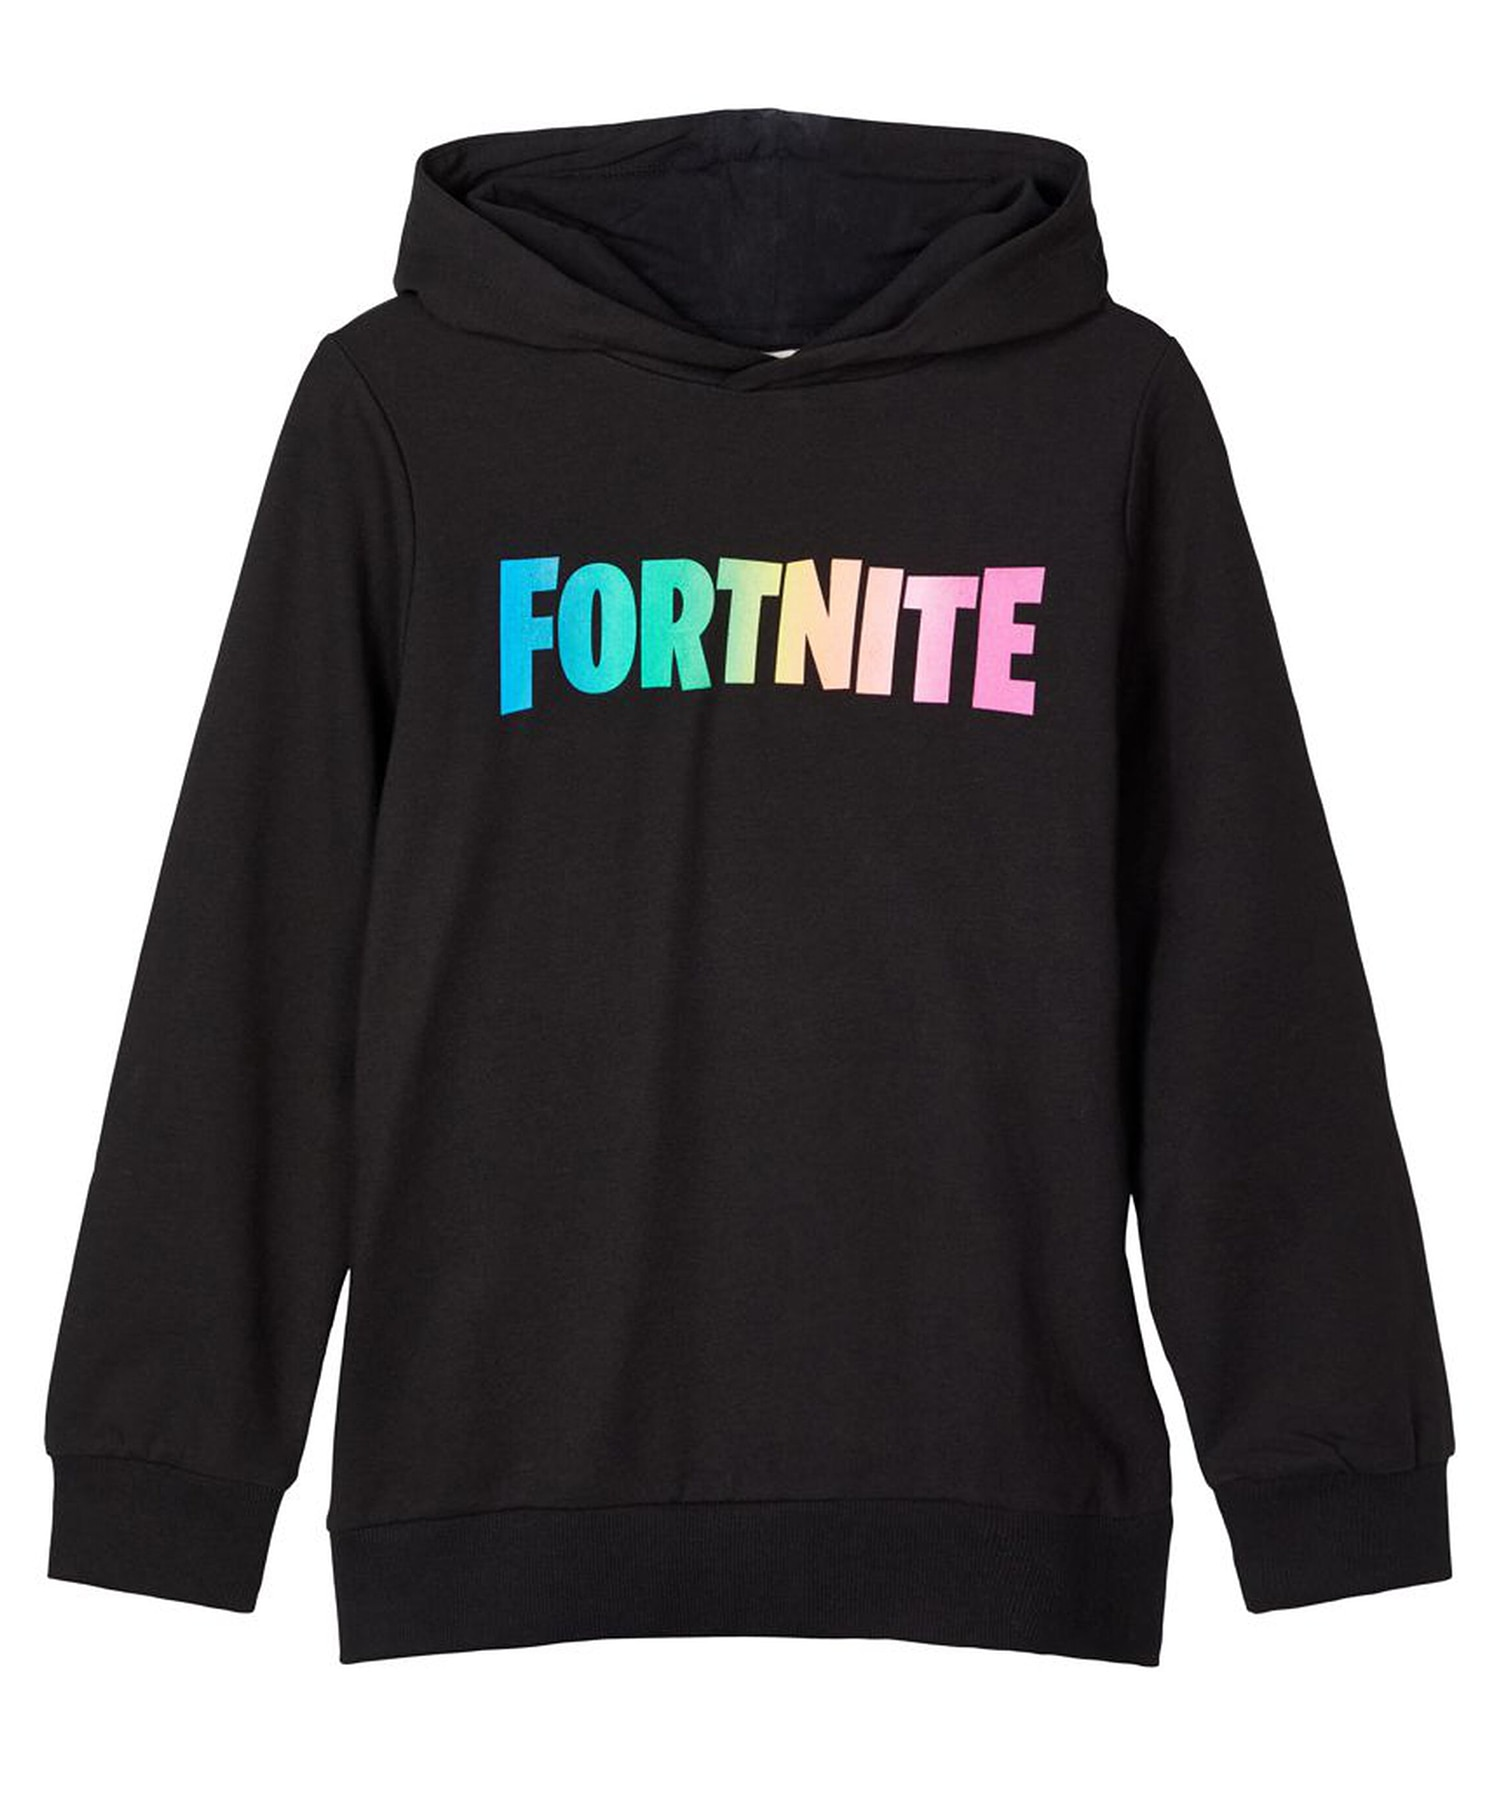 Name it Fortnite Hoodie